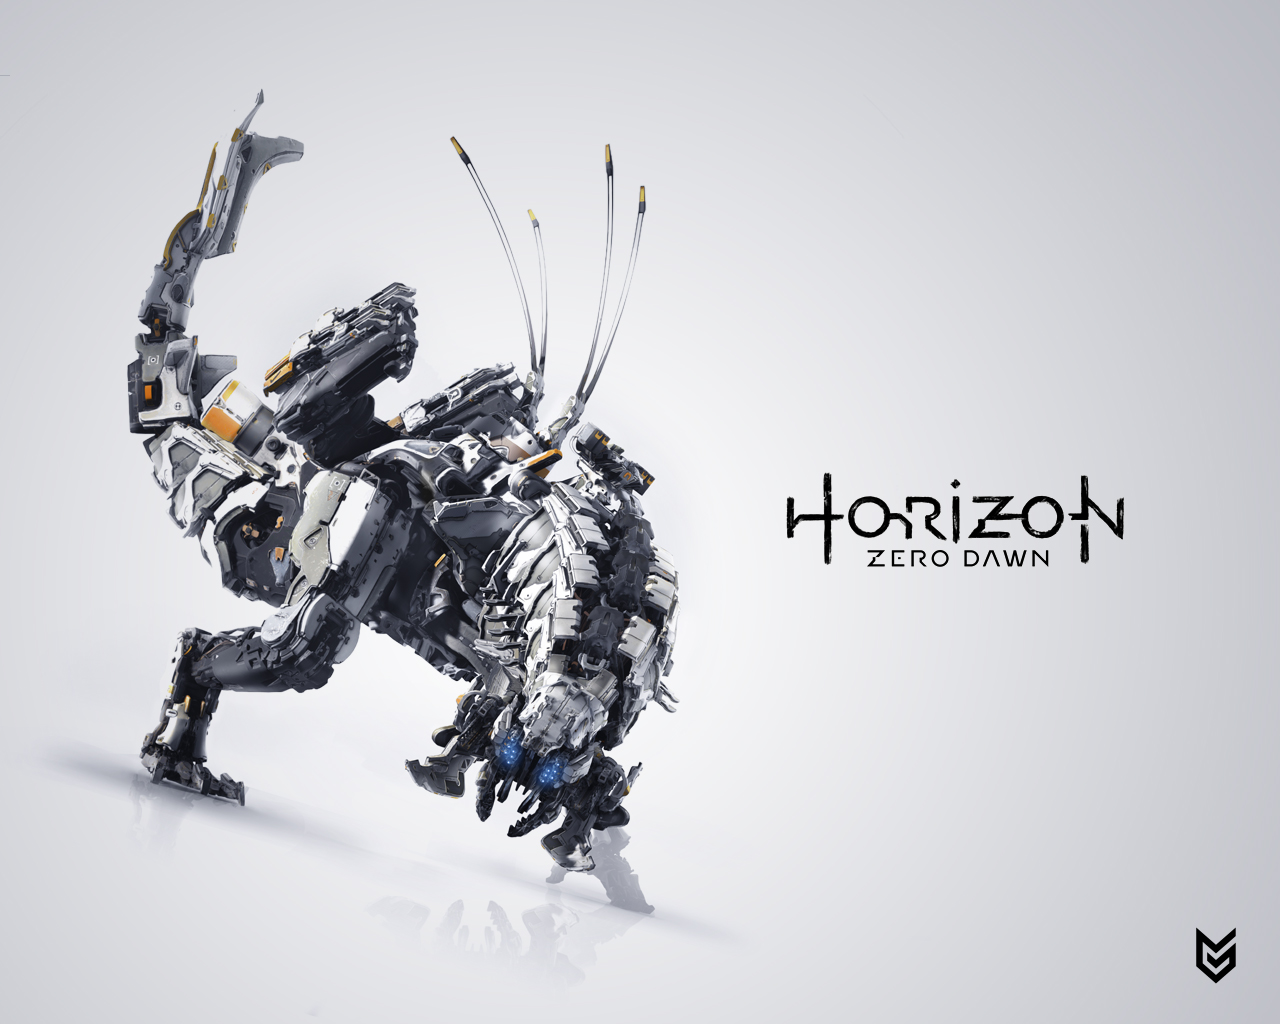 Guerrilla releases amazing horizon zero dawn wallpapers - Horizon zero dawn android wallpaper ...